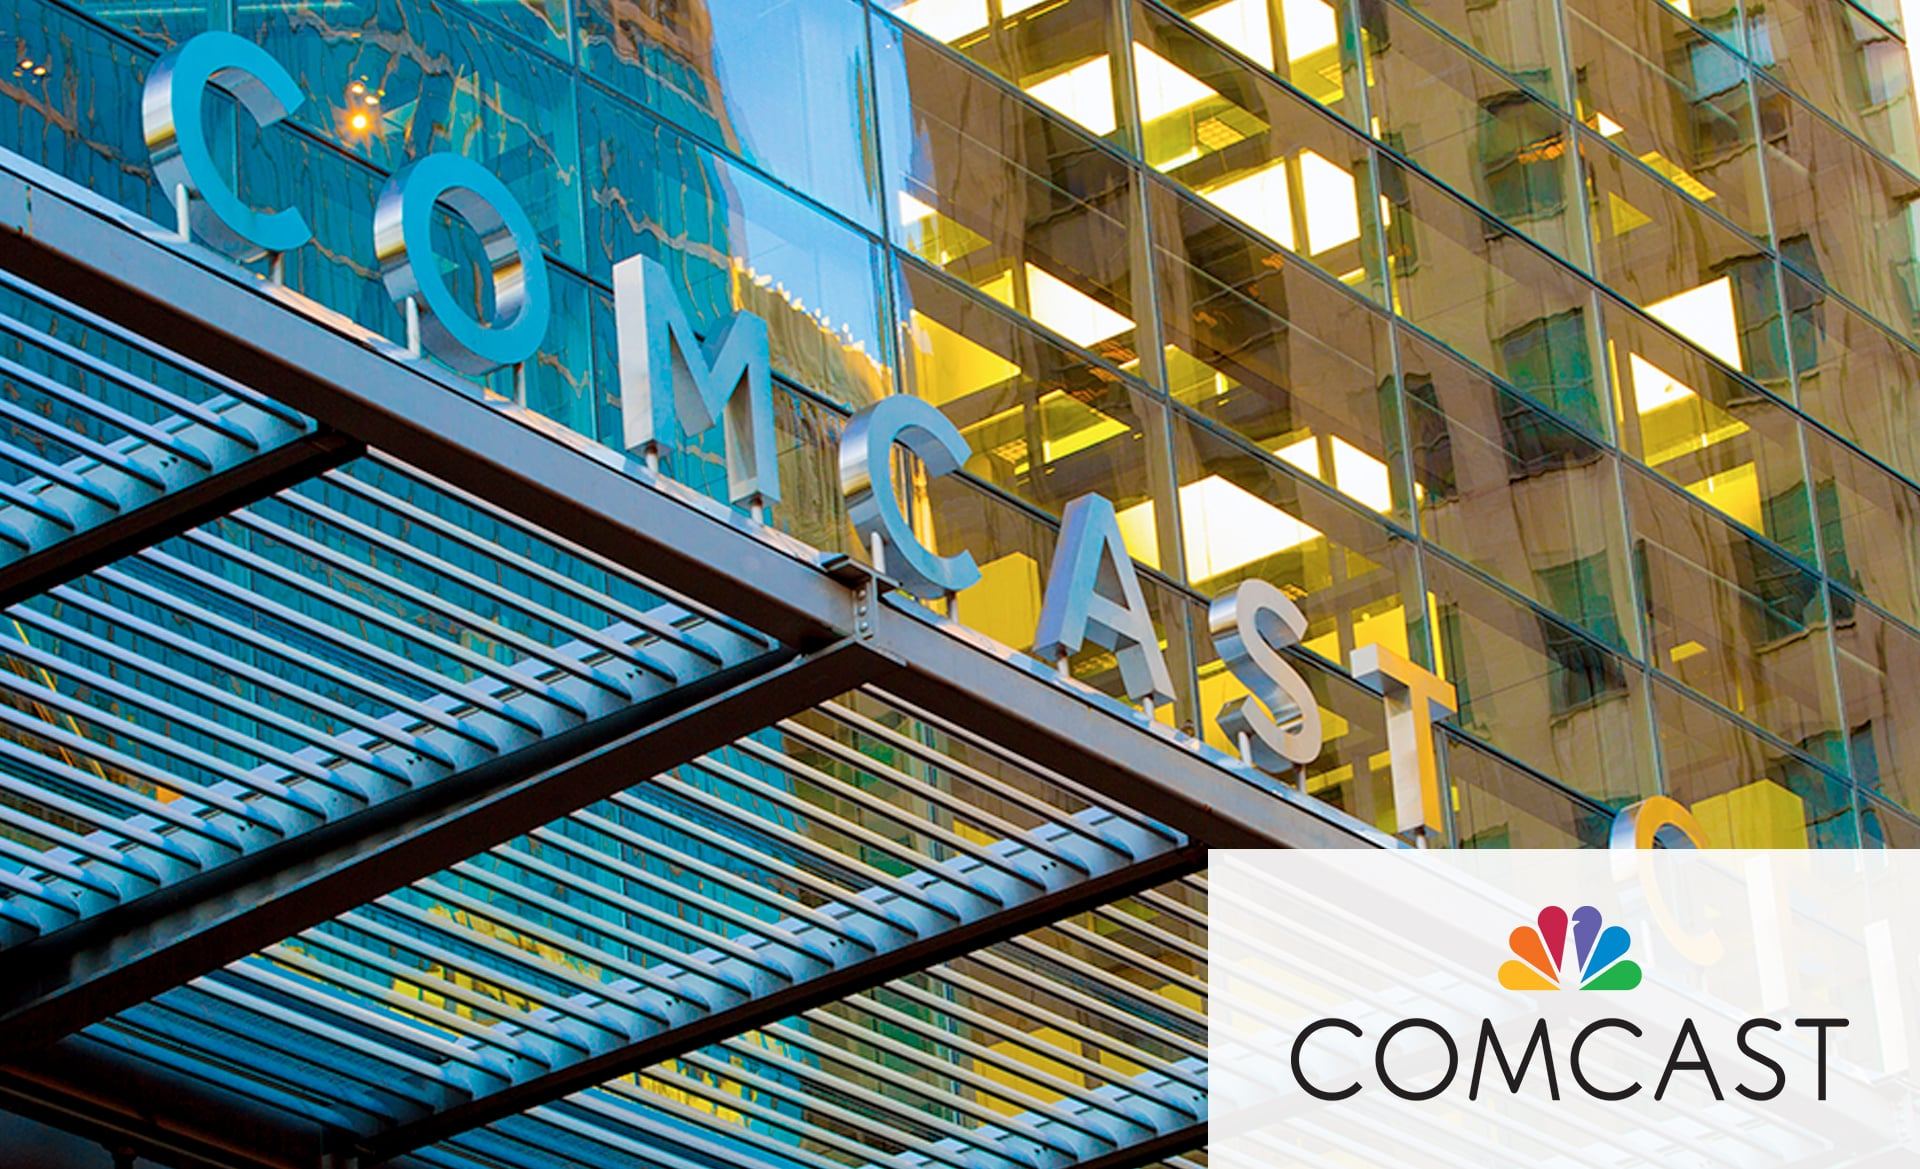 Comcast uses Sciera's Realwatch for Trigger marketing campaigns